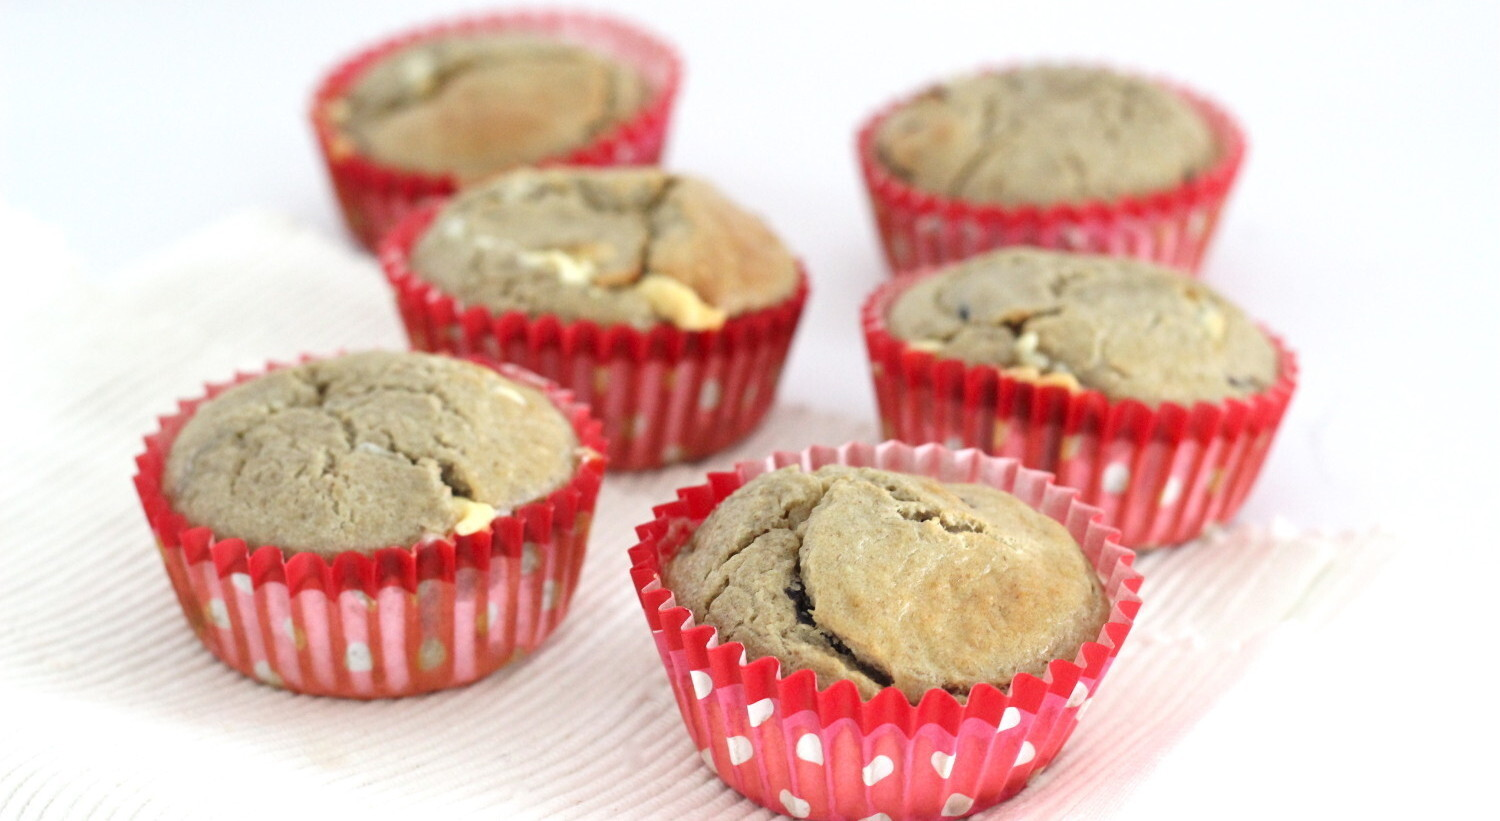 HAVERMOUT MUFFINS MET CRANBERRY EN WITTE CHOCOLADE